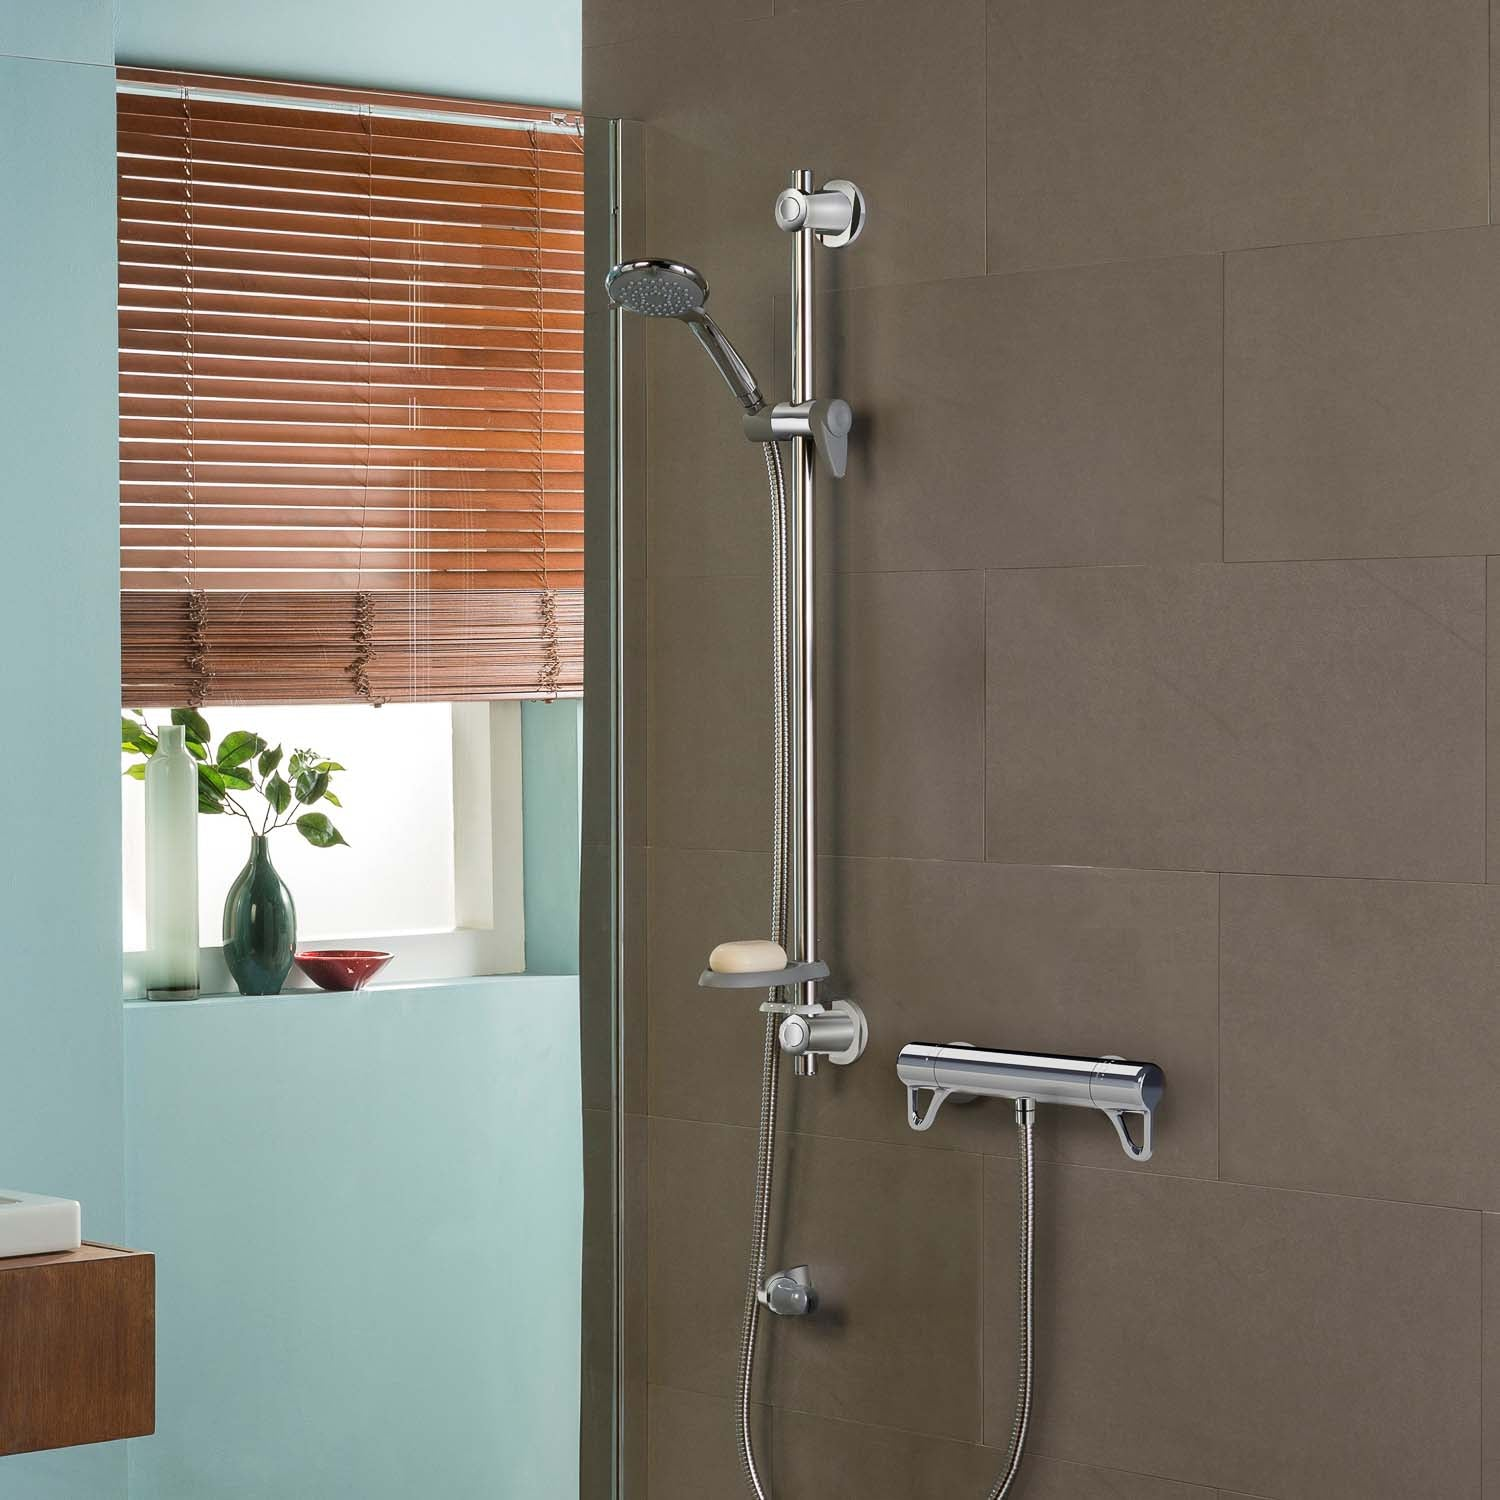 Modale Exposed Shower Valve with a chrome finish lifestyle image